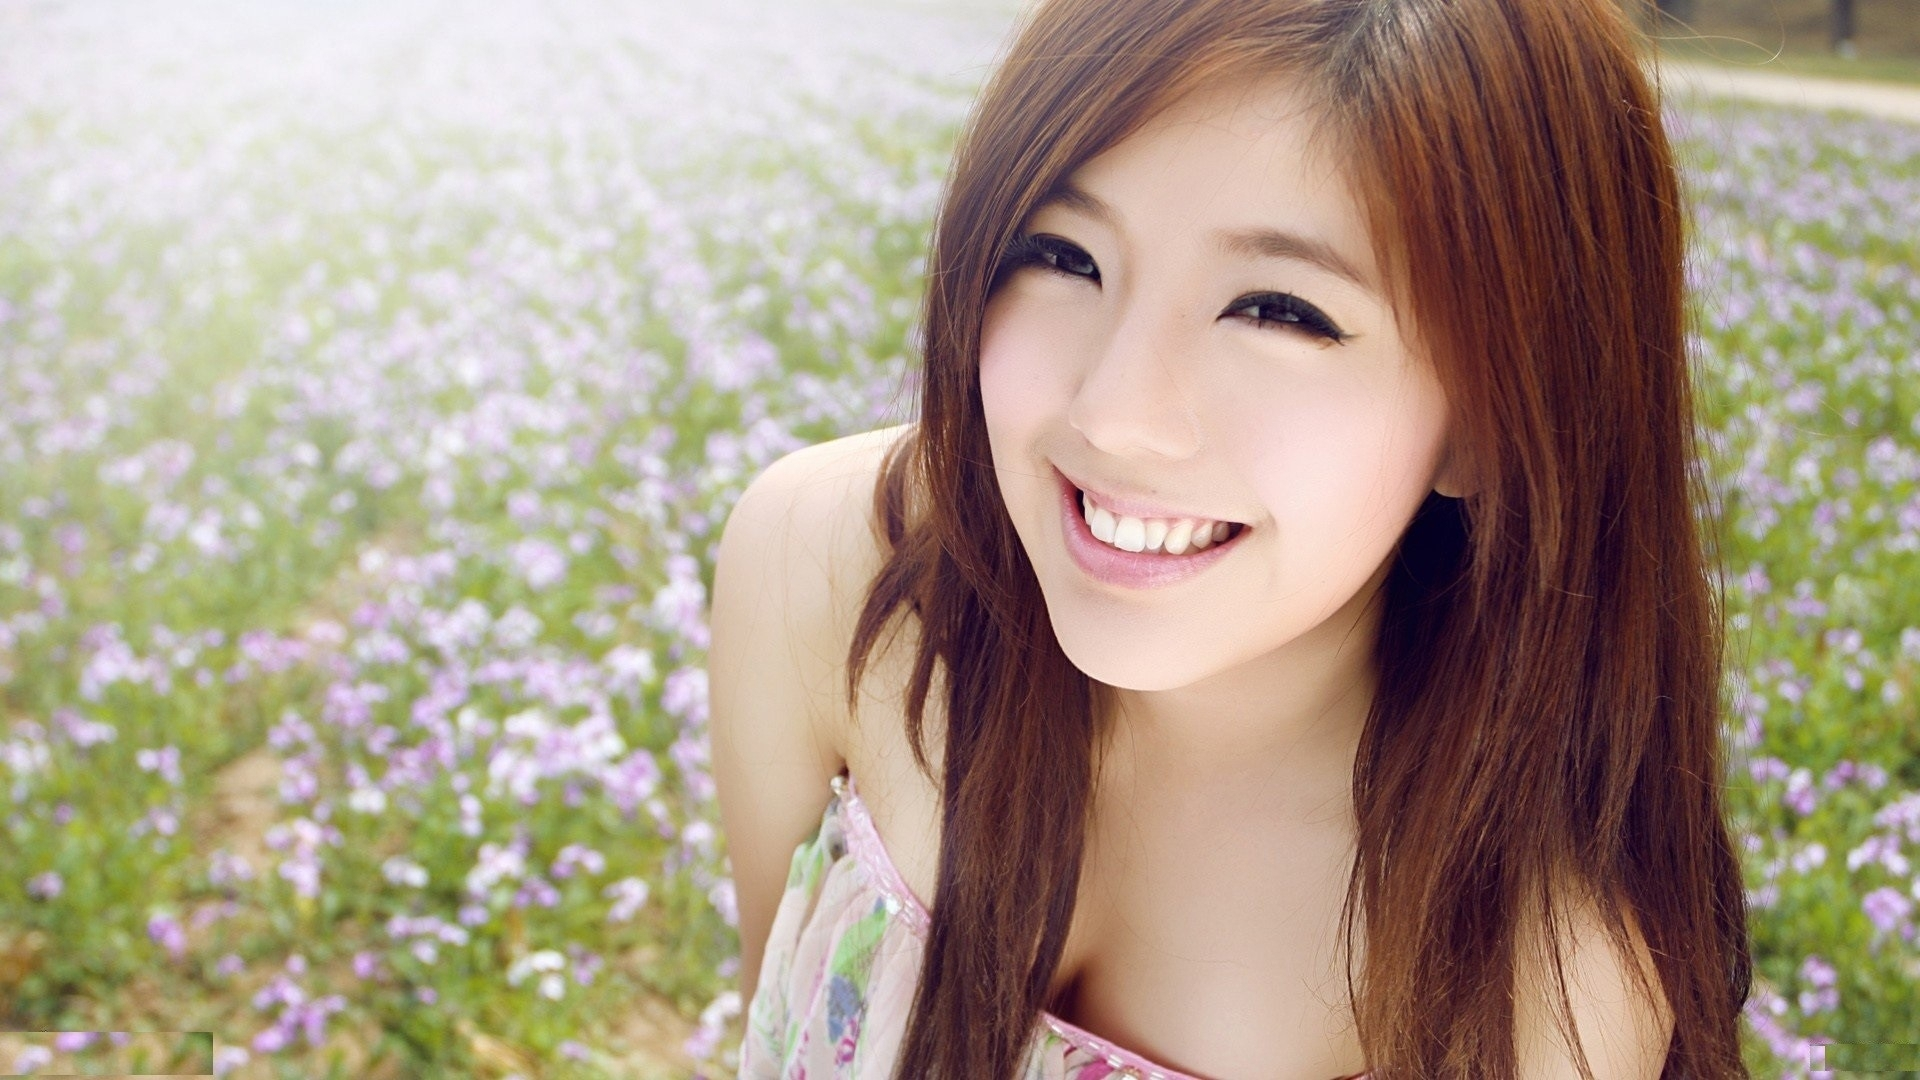 Cute Hd Wallpapers Of Girls 3d - Cute Korean Girl Smiling , HD Wallpaper & Backgrounds